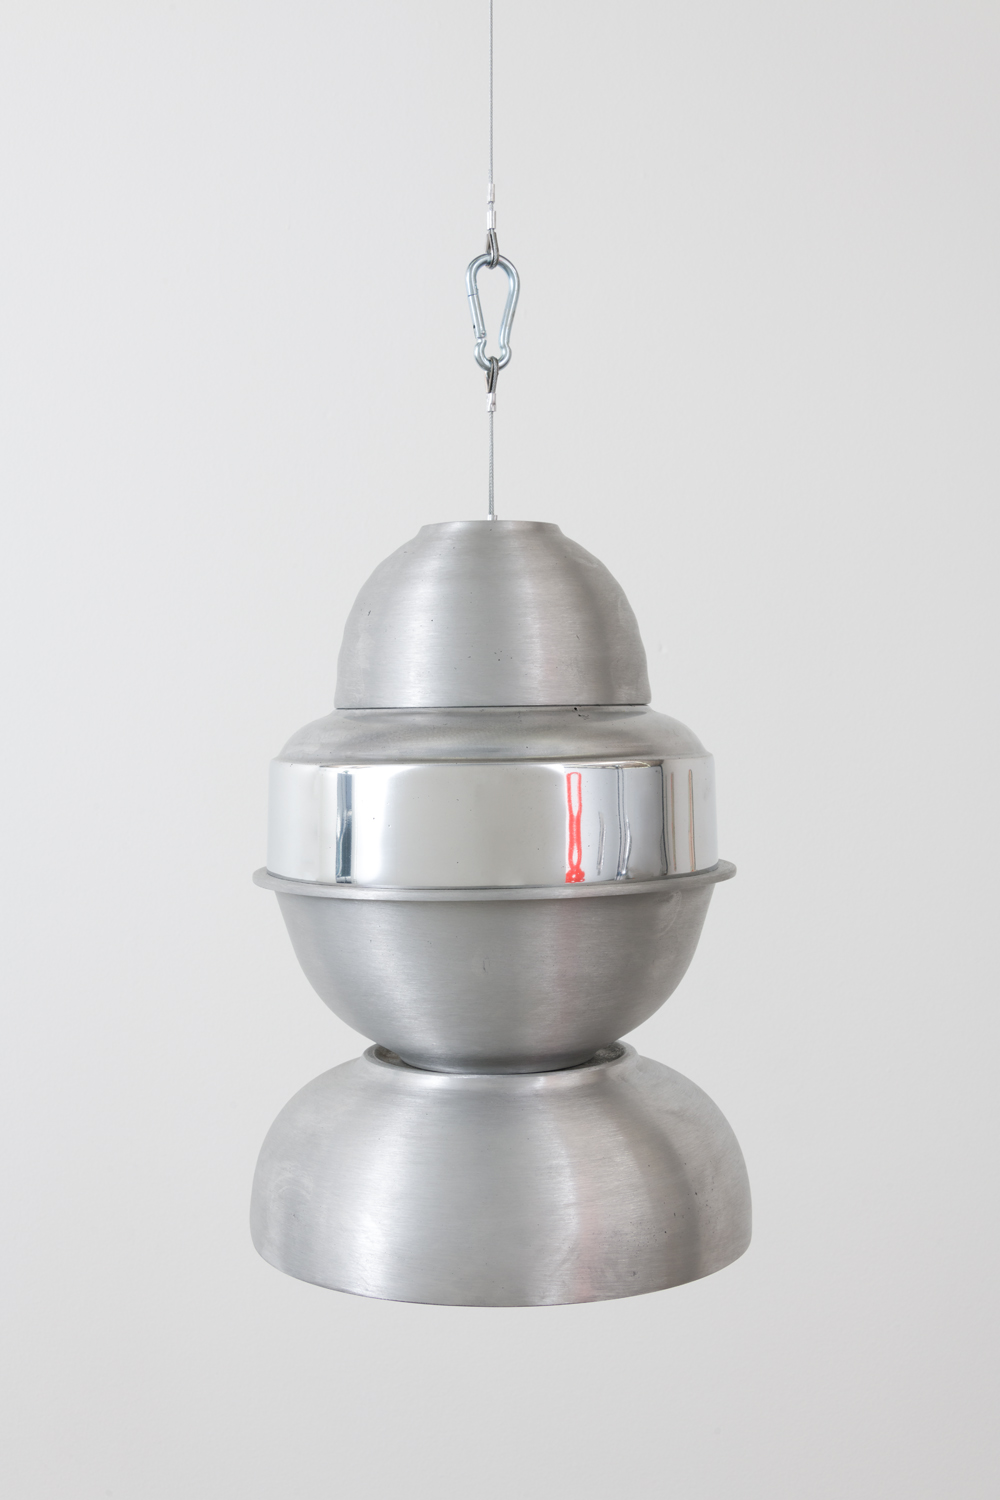 Weather Balloon, 2018  Cast Aluminum  15 x 10 inches